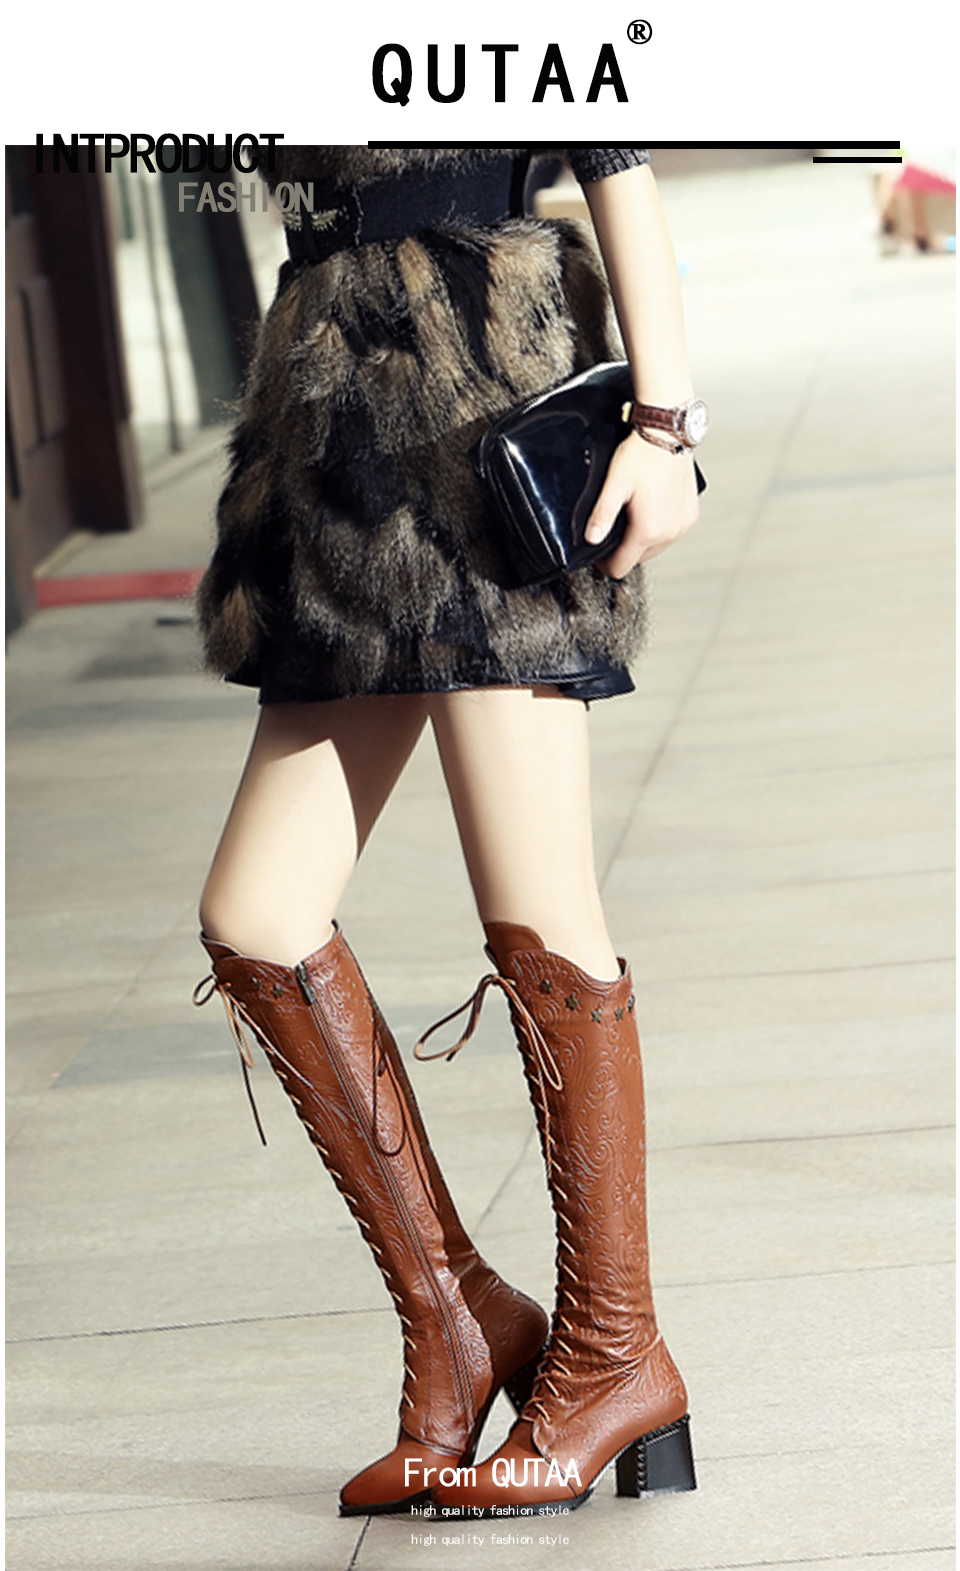 2018 Women's Over The Knee High Boots, Cow Leather, Fashion Lace Up Pointed Toe 10